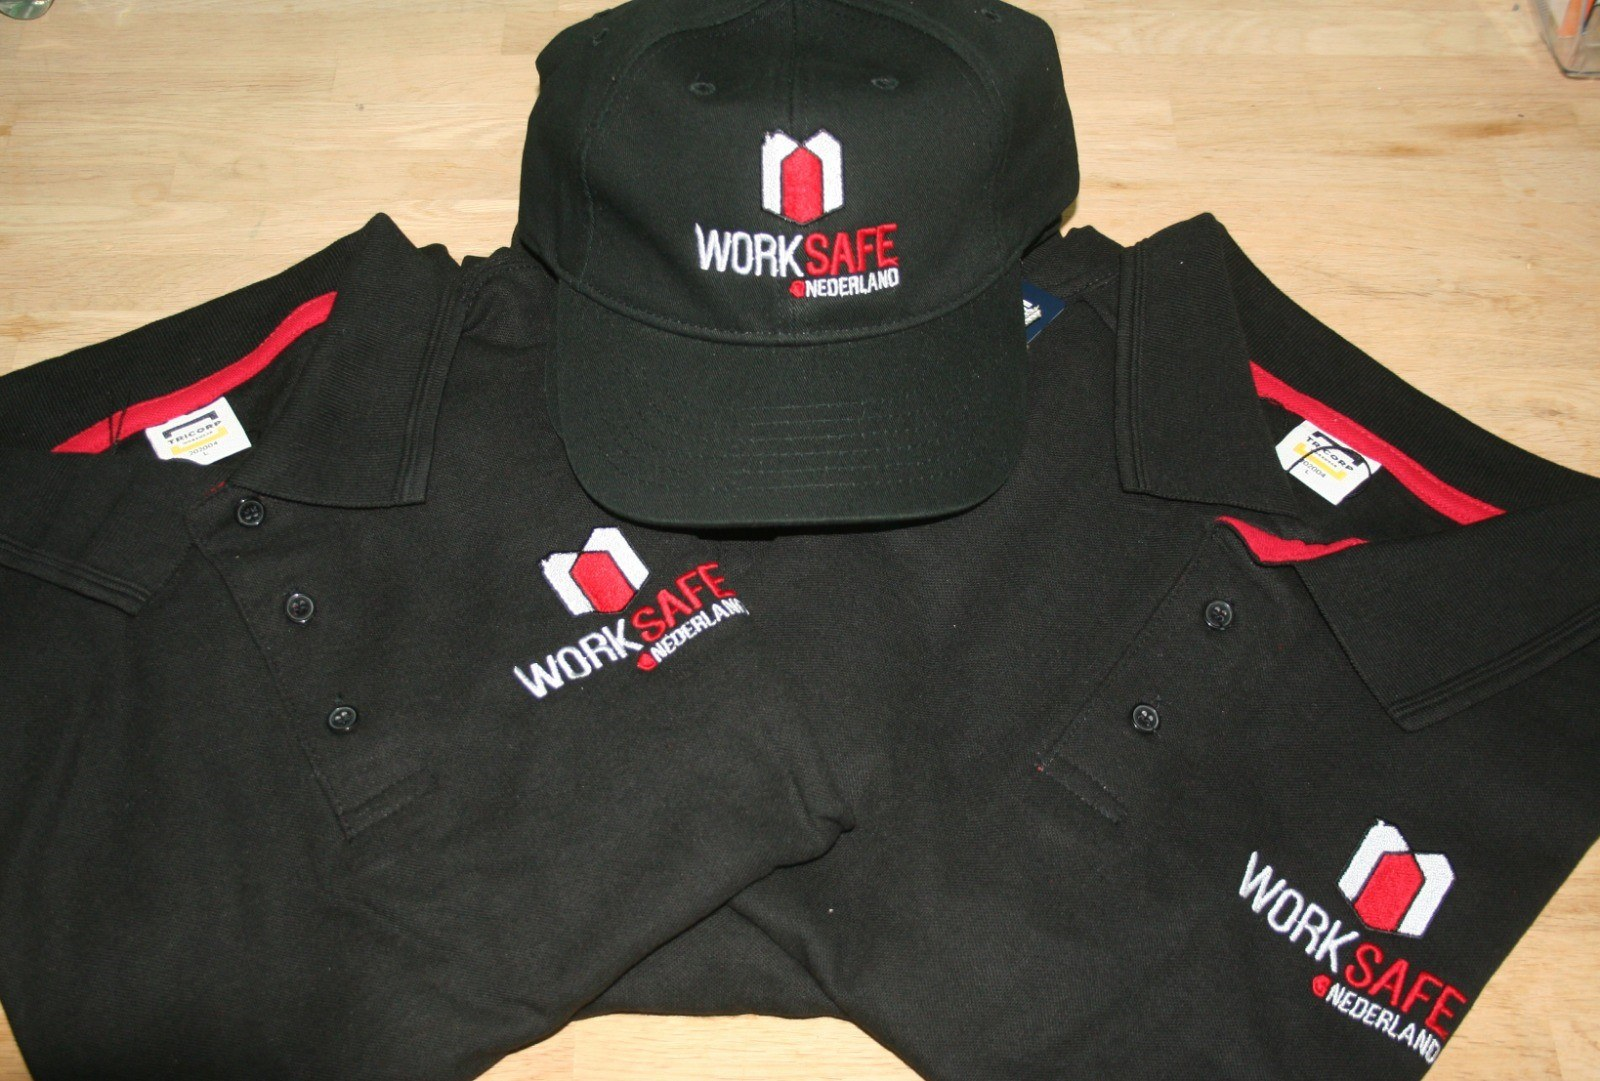 Worksafe borduren